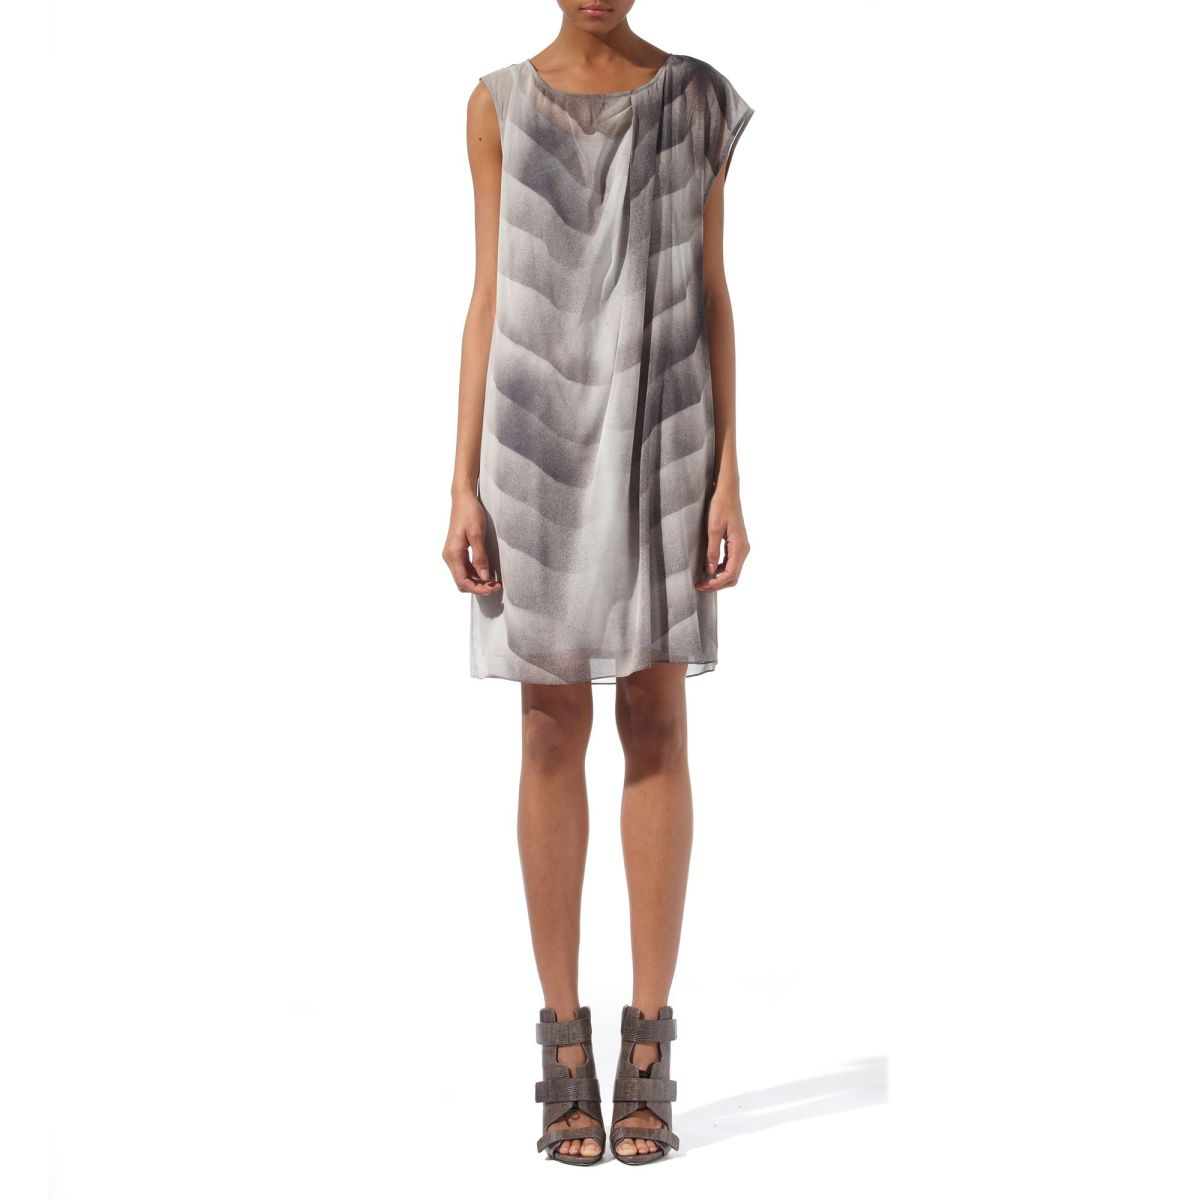 helmut-lang-grey-gradient-print-dress-gray-product-2-526067-572518213